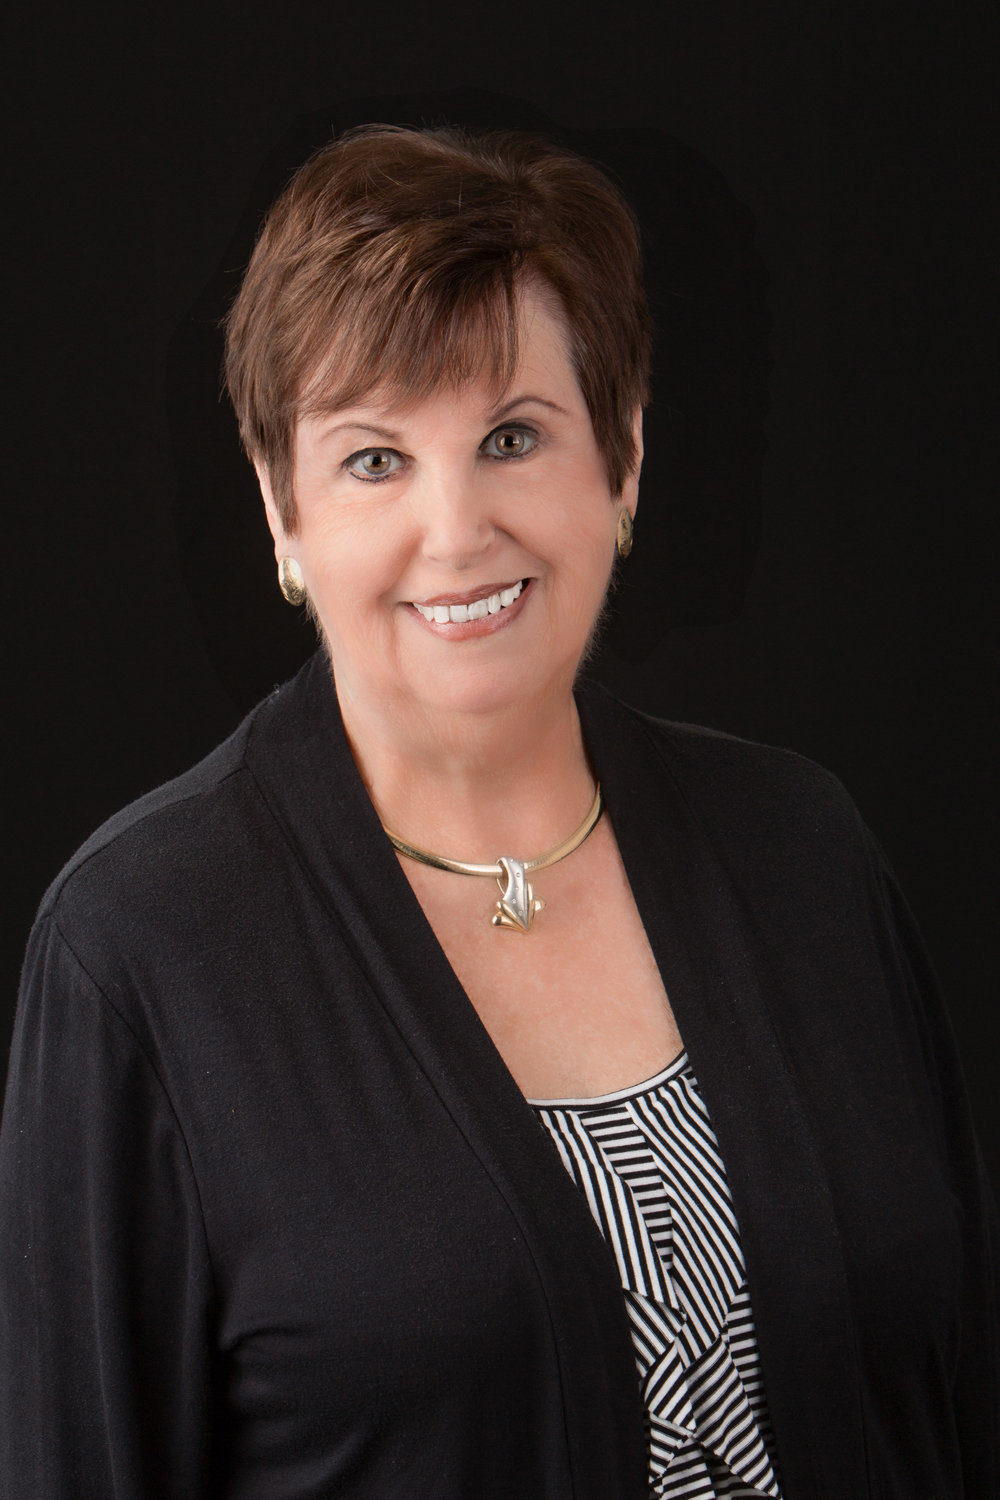 Doris Wagman   954-646-7062  DWagman@aol.com  As a realtor, teacher and mother Doris understands the influence the buying and selling process of a home has on an entire family. Together with VEGA Realty she achieves great results with high standards.  Contact Doris today, you'll be glad you did!